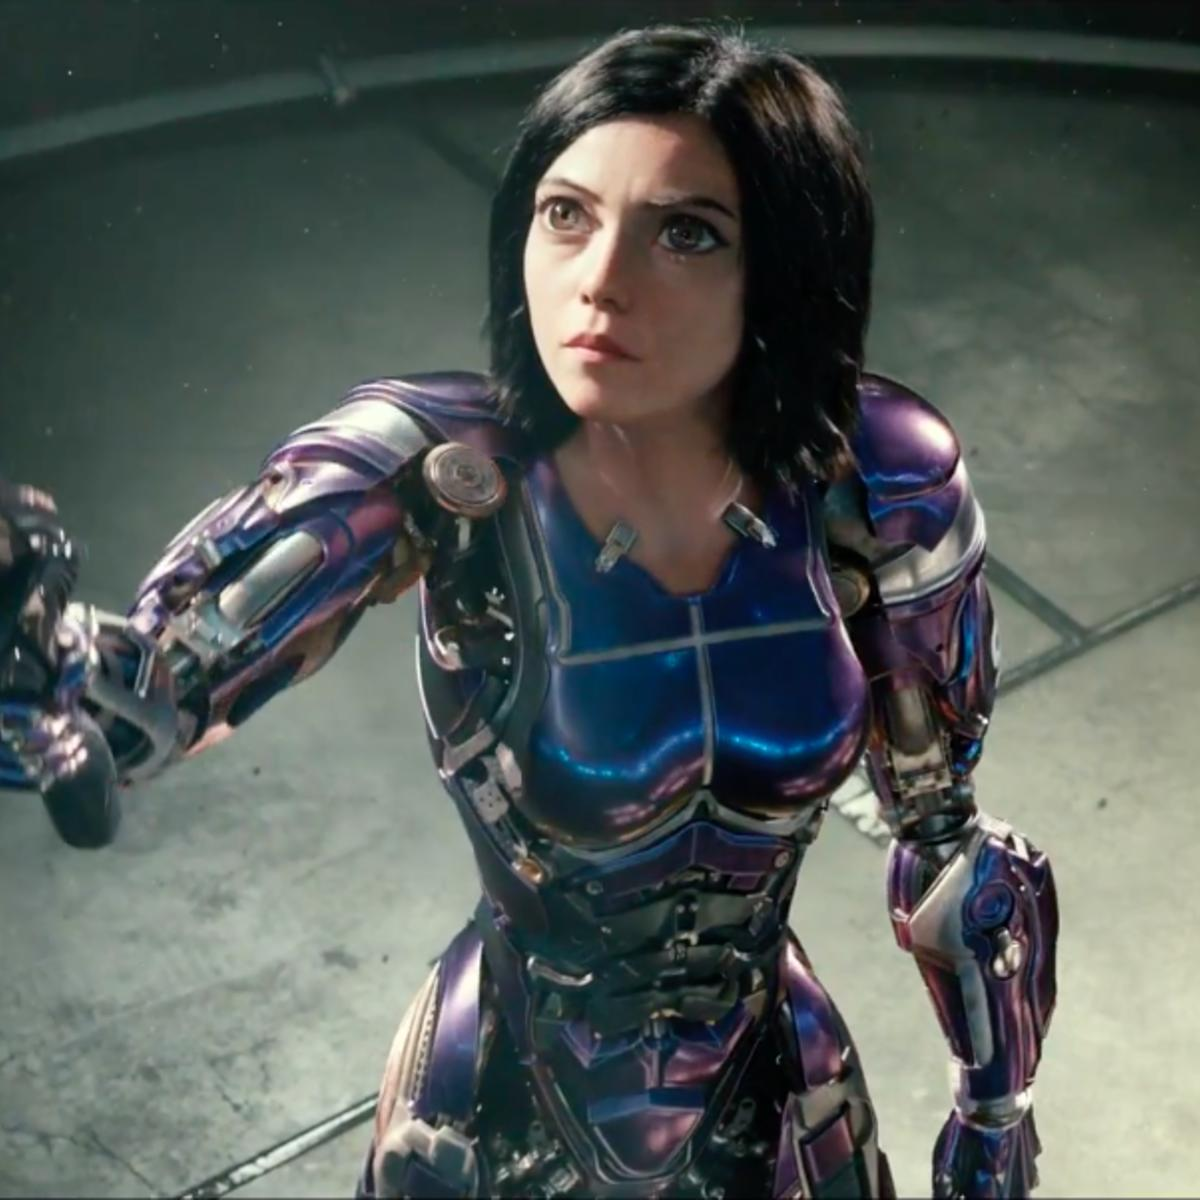 Third Official Trailer for Robert Rodriguez's Sci-Fi 'Alita: Battle Angel'